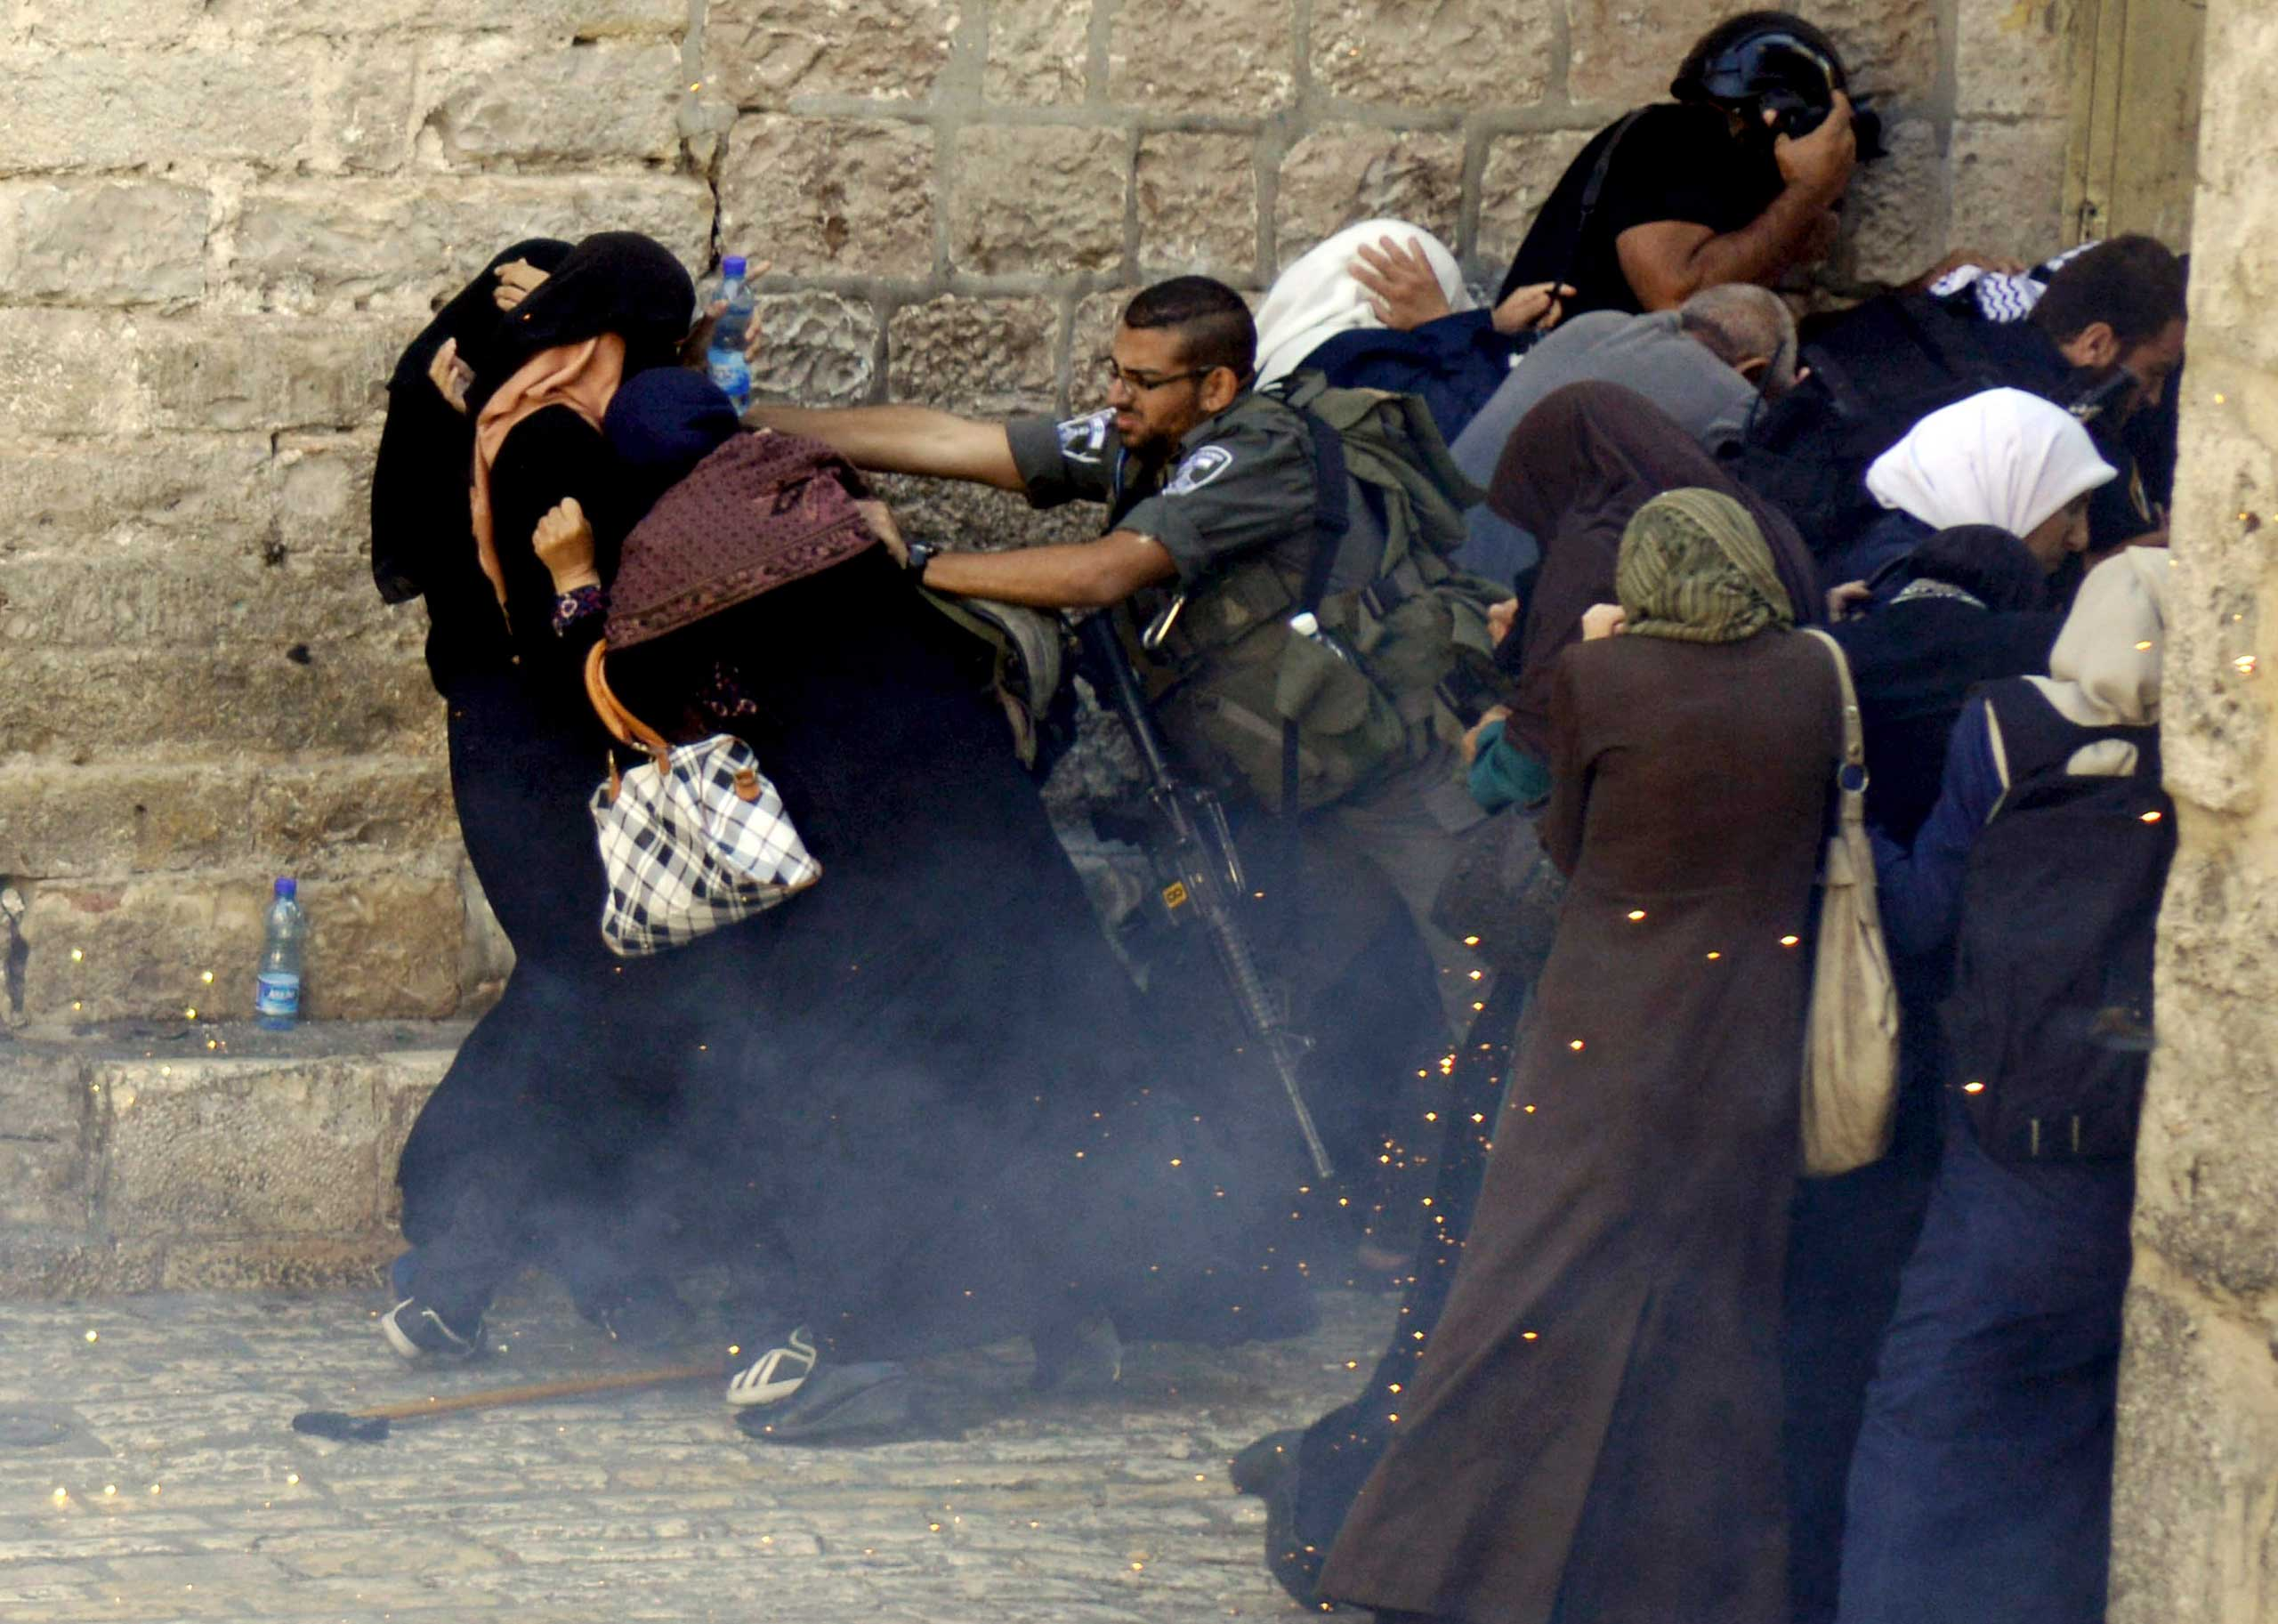 Israeli border policeman push Palestinian women during clashes in the Old City of Jerusalem, Oct. 13, 2014.